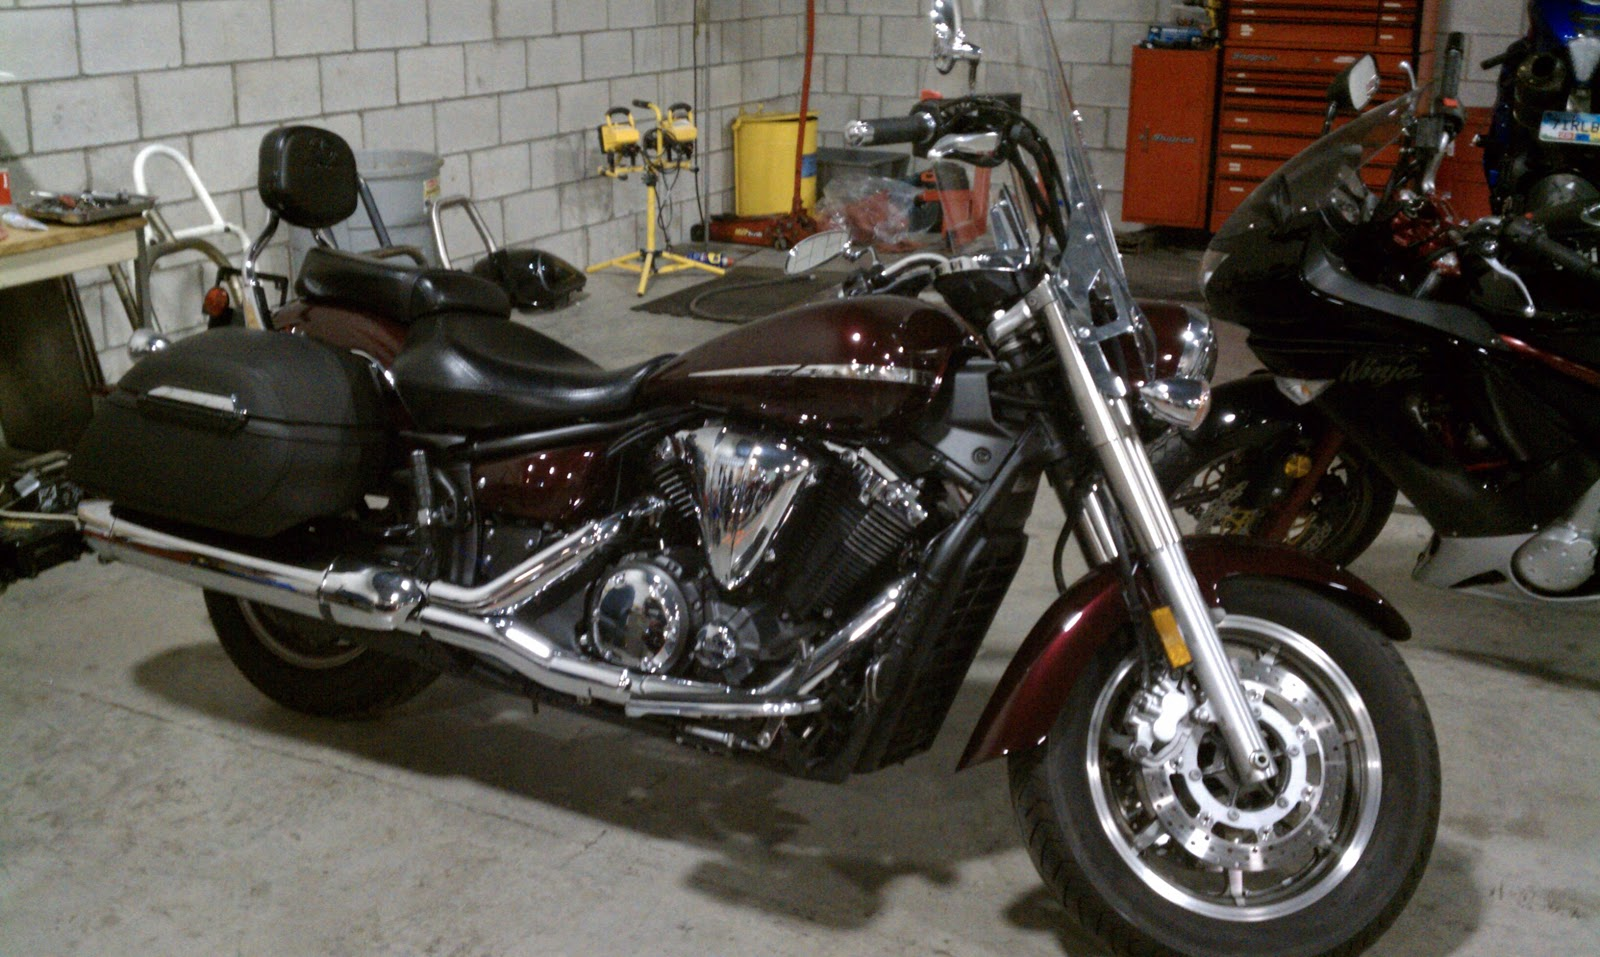 2007 Yamaha V Star 1300 Touring Features Fuel Injection Belt Drive Water Cooled Windshield Lockable Frame Mounted Saddlebags Sissy Bar